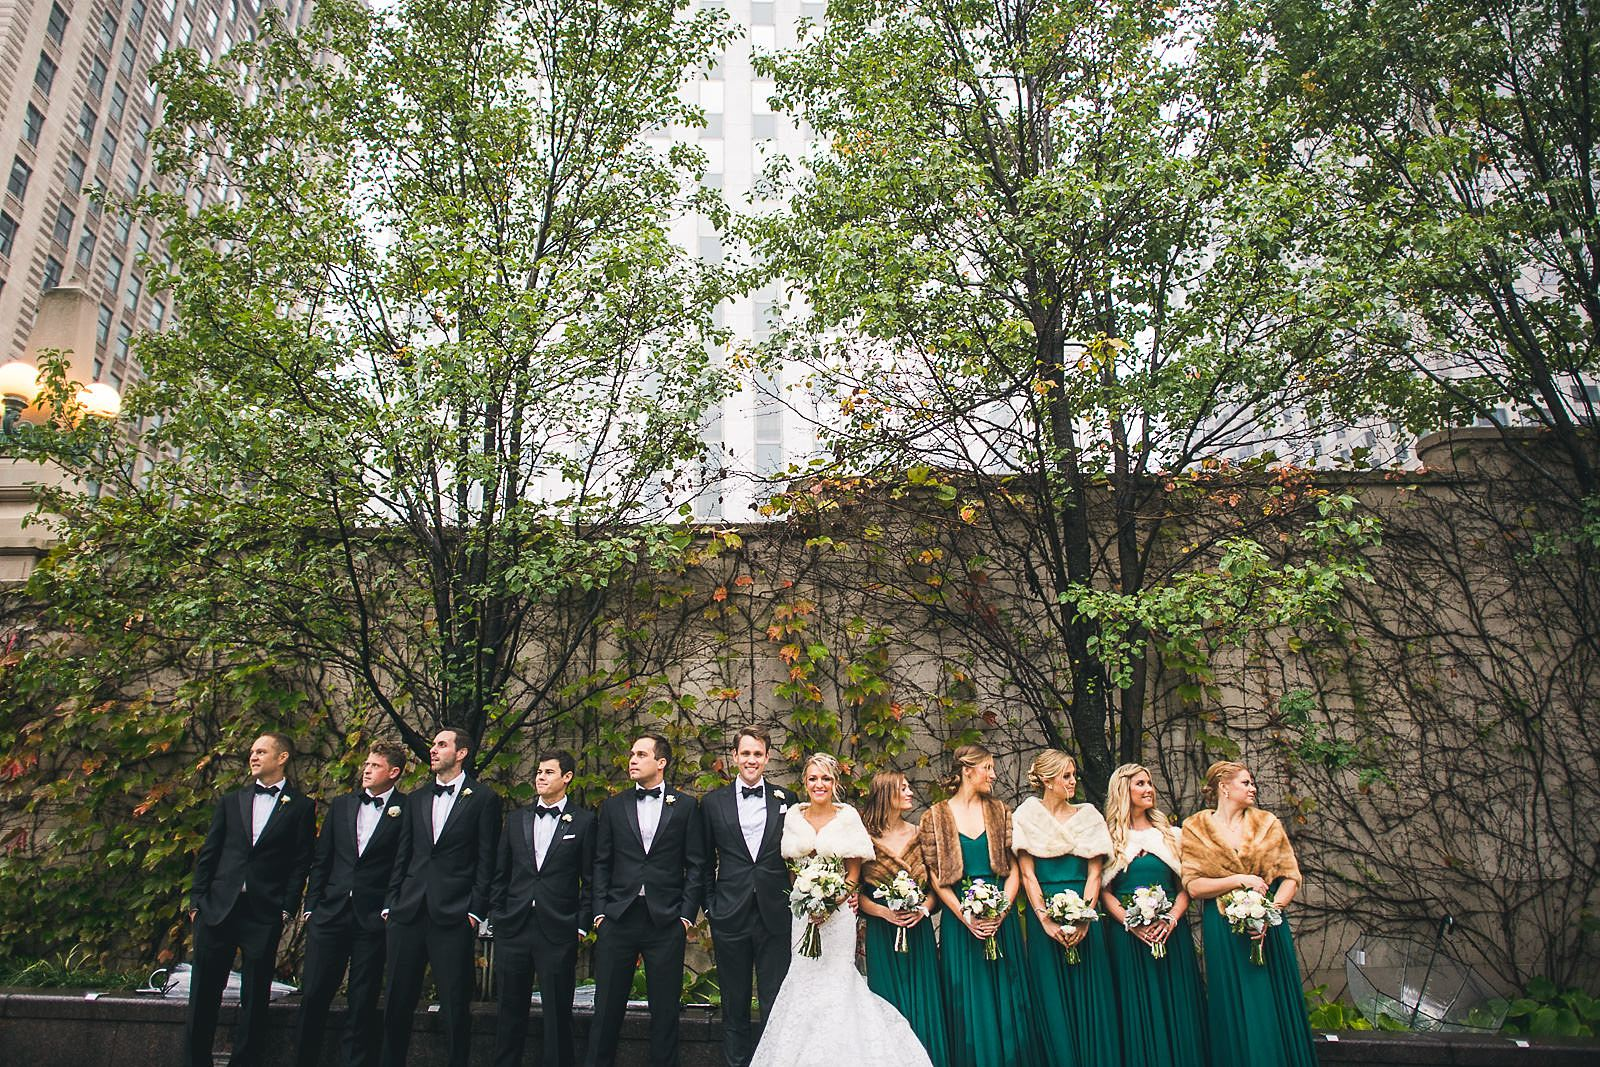 34 full bridal party wedding photos - Ivy Room Wedding // Audrey + Tyler